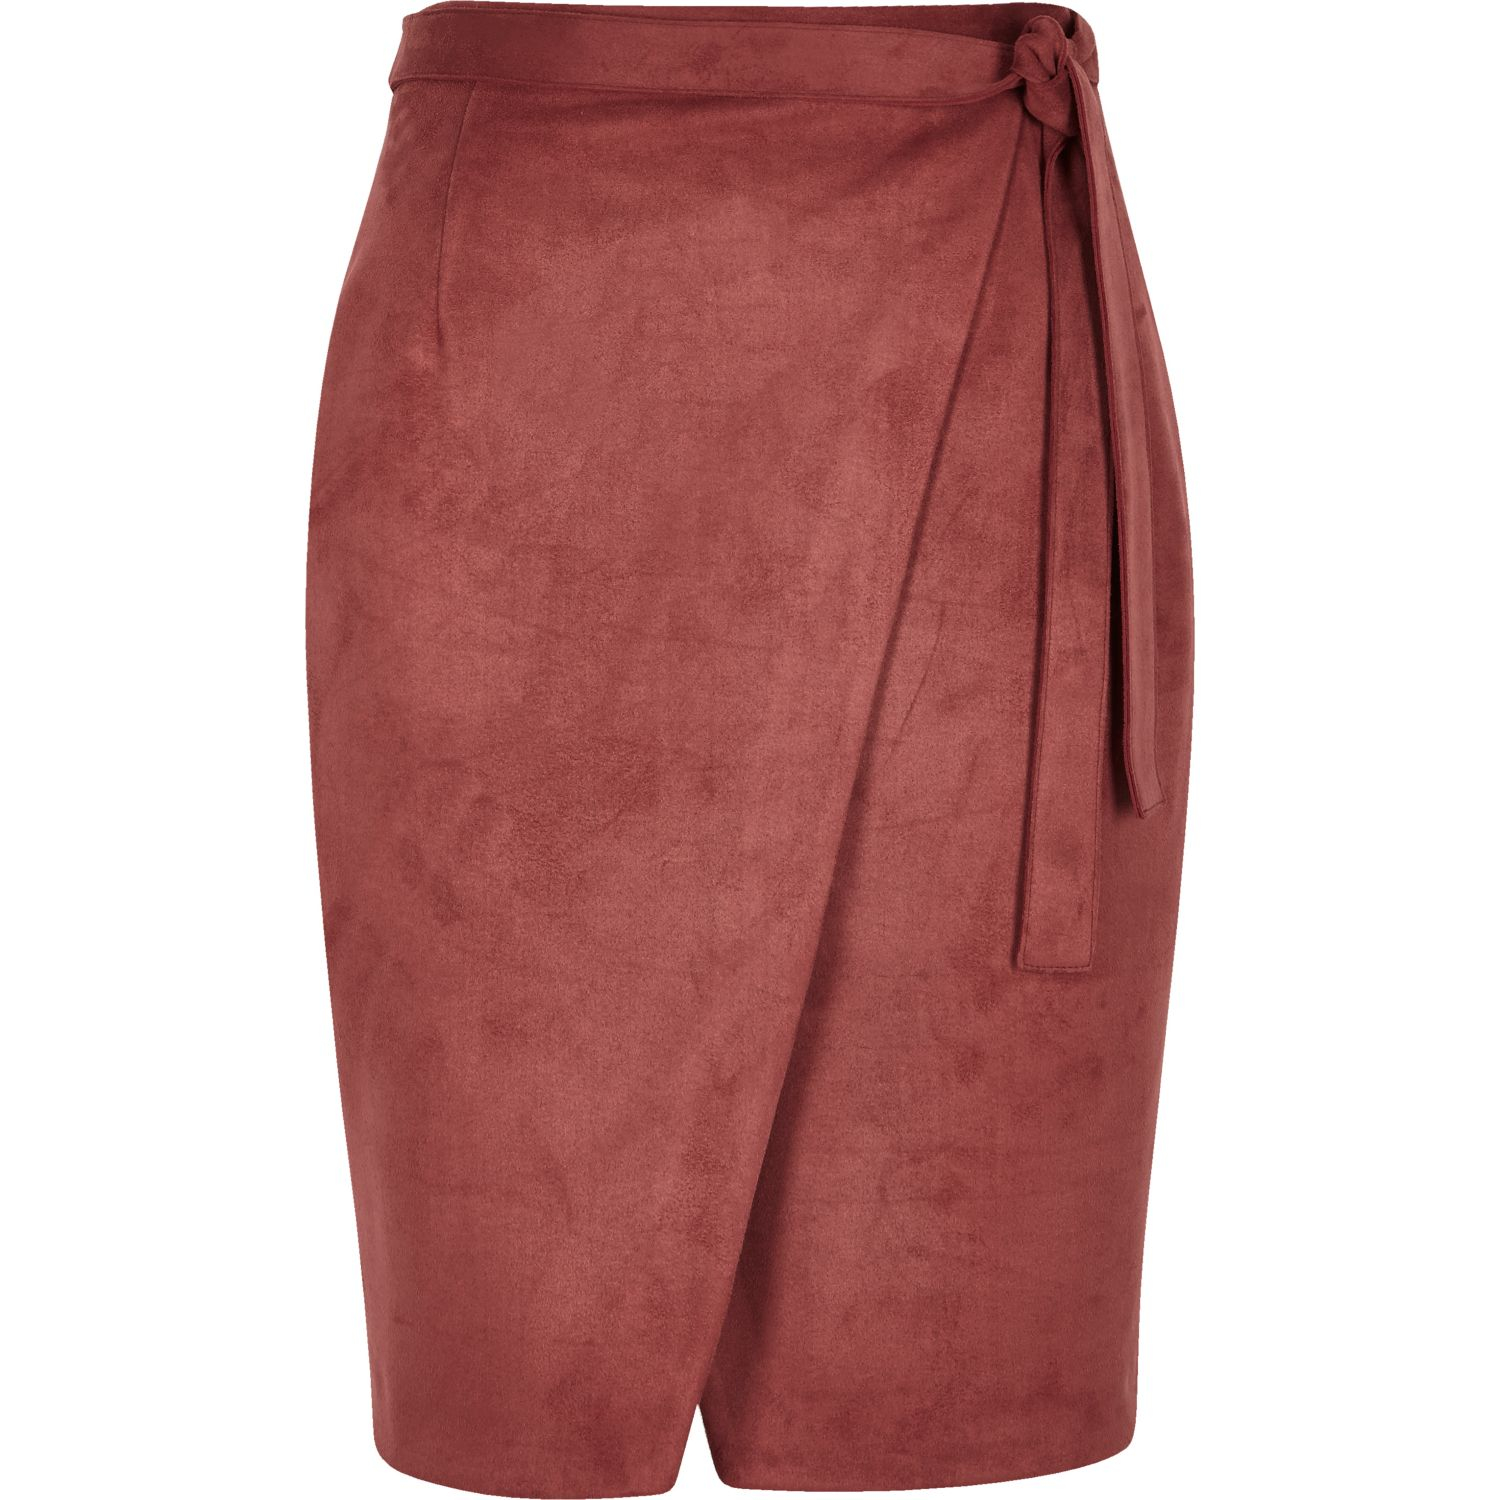 River Island Black Suede Leather Skirt